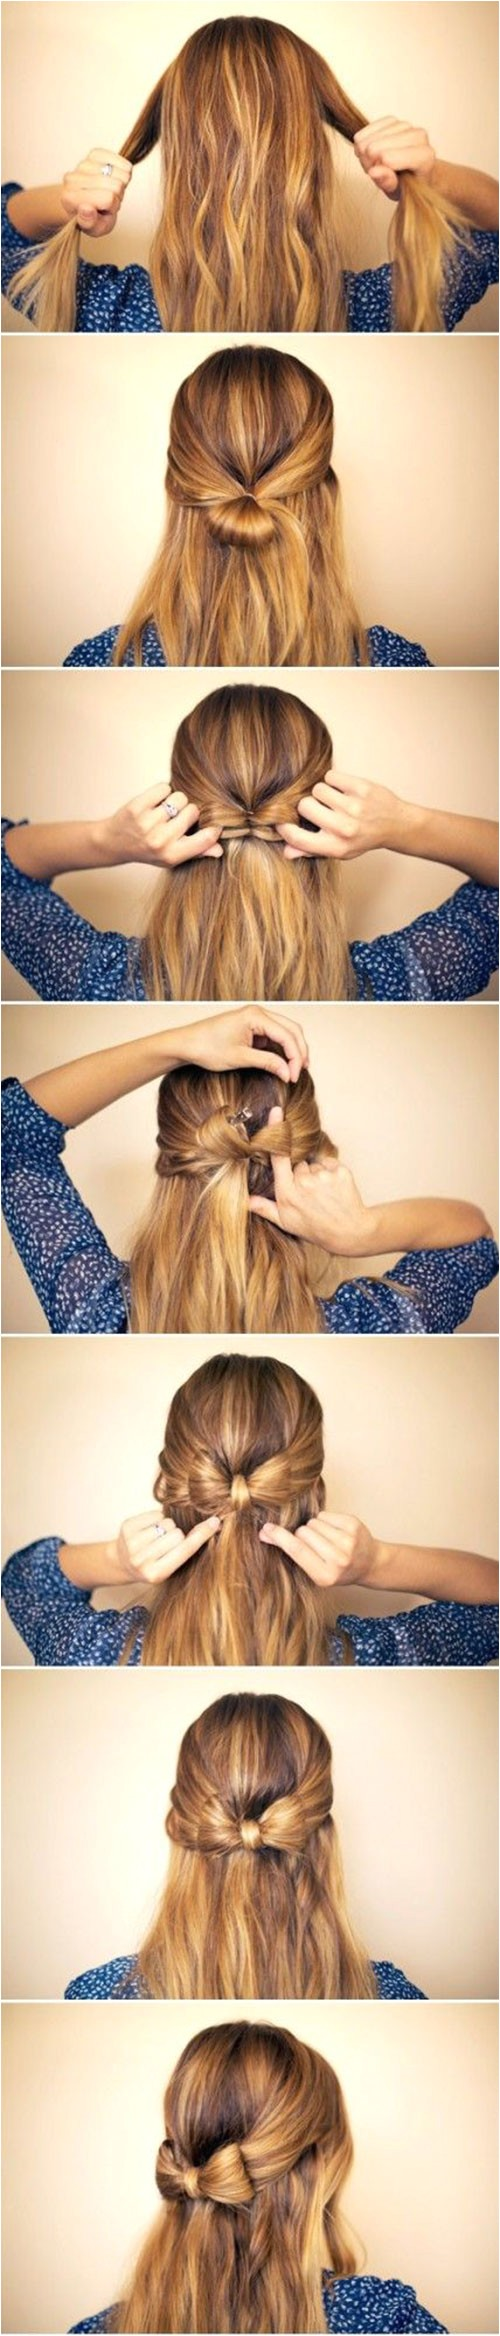 12 easy step by step summer hairstyle tutorials for beginners 2017